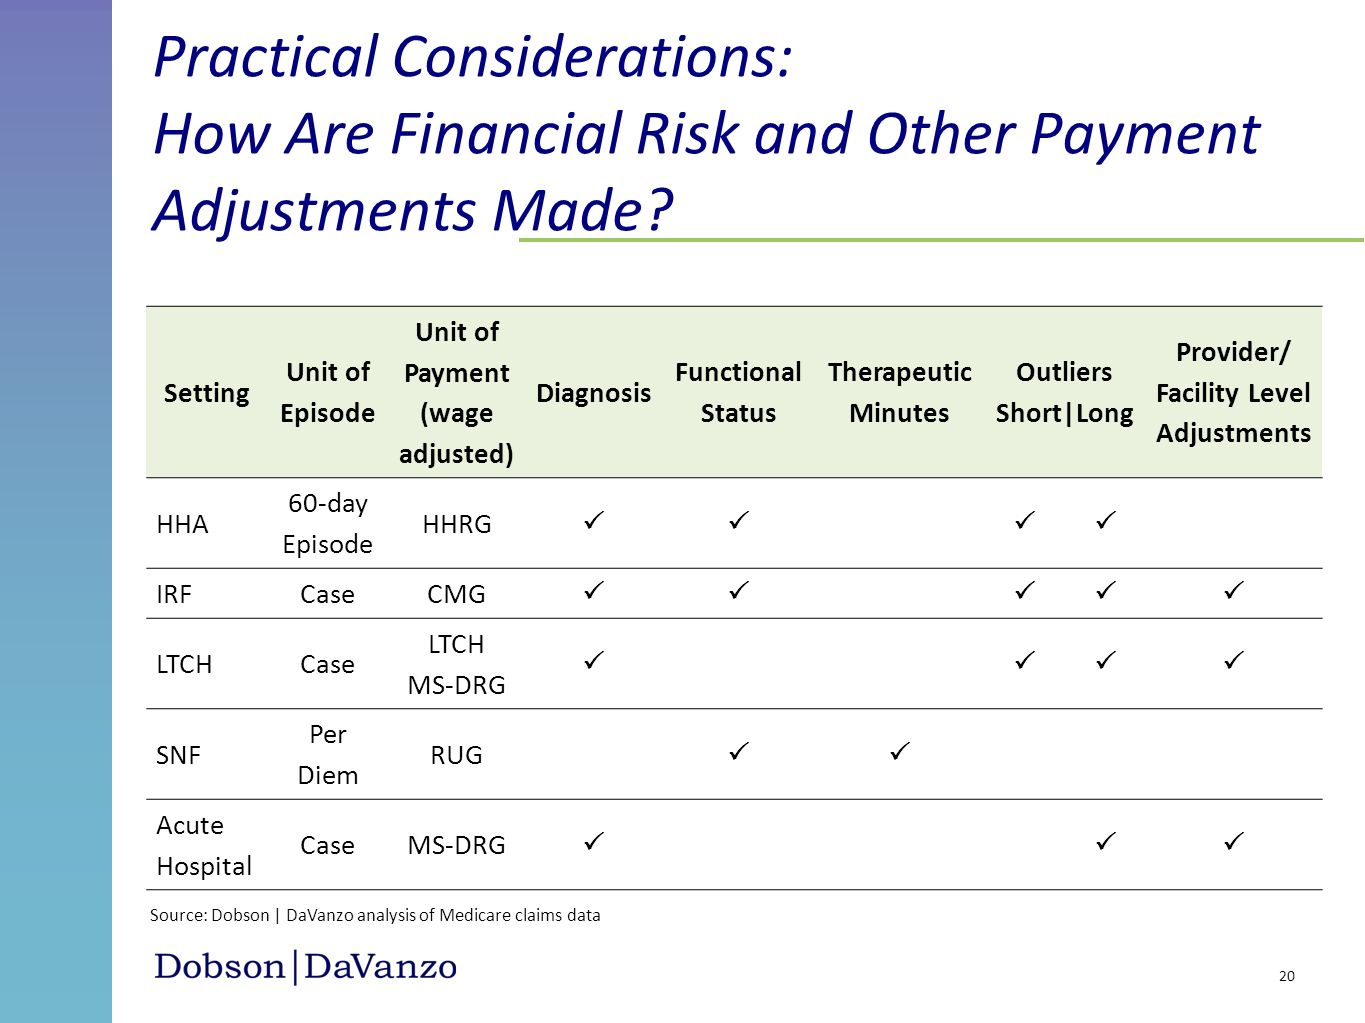 Unit of Payment (wage adjusted) Facility Level Adjustments